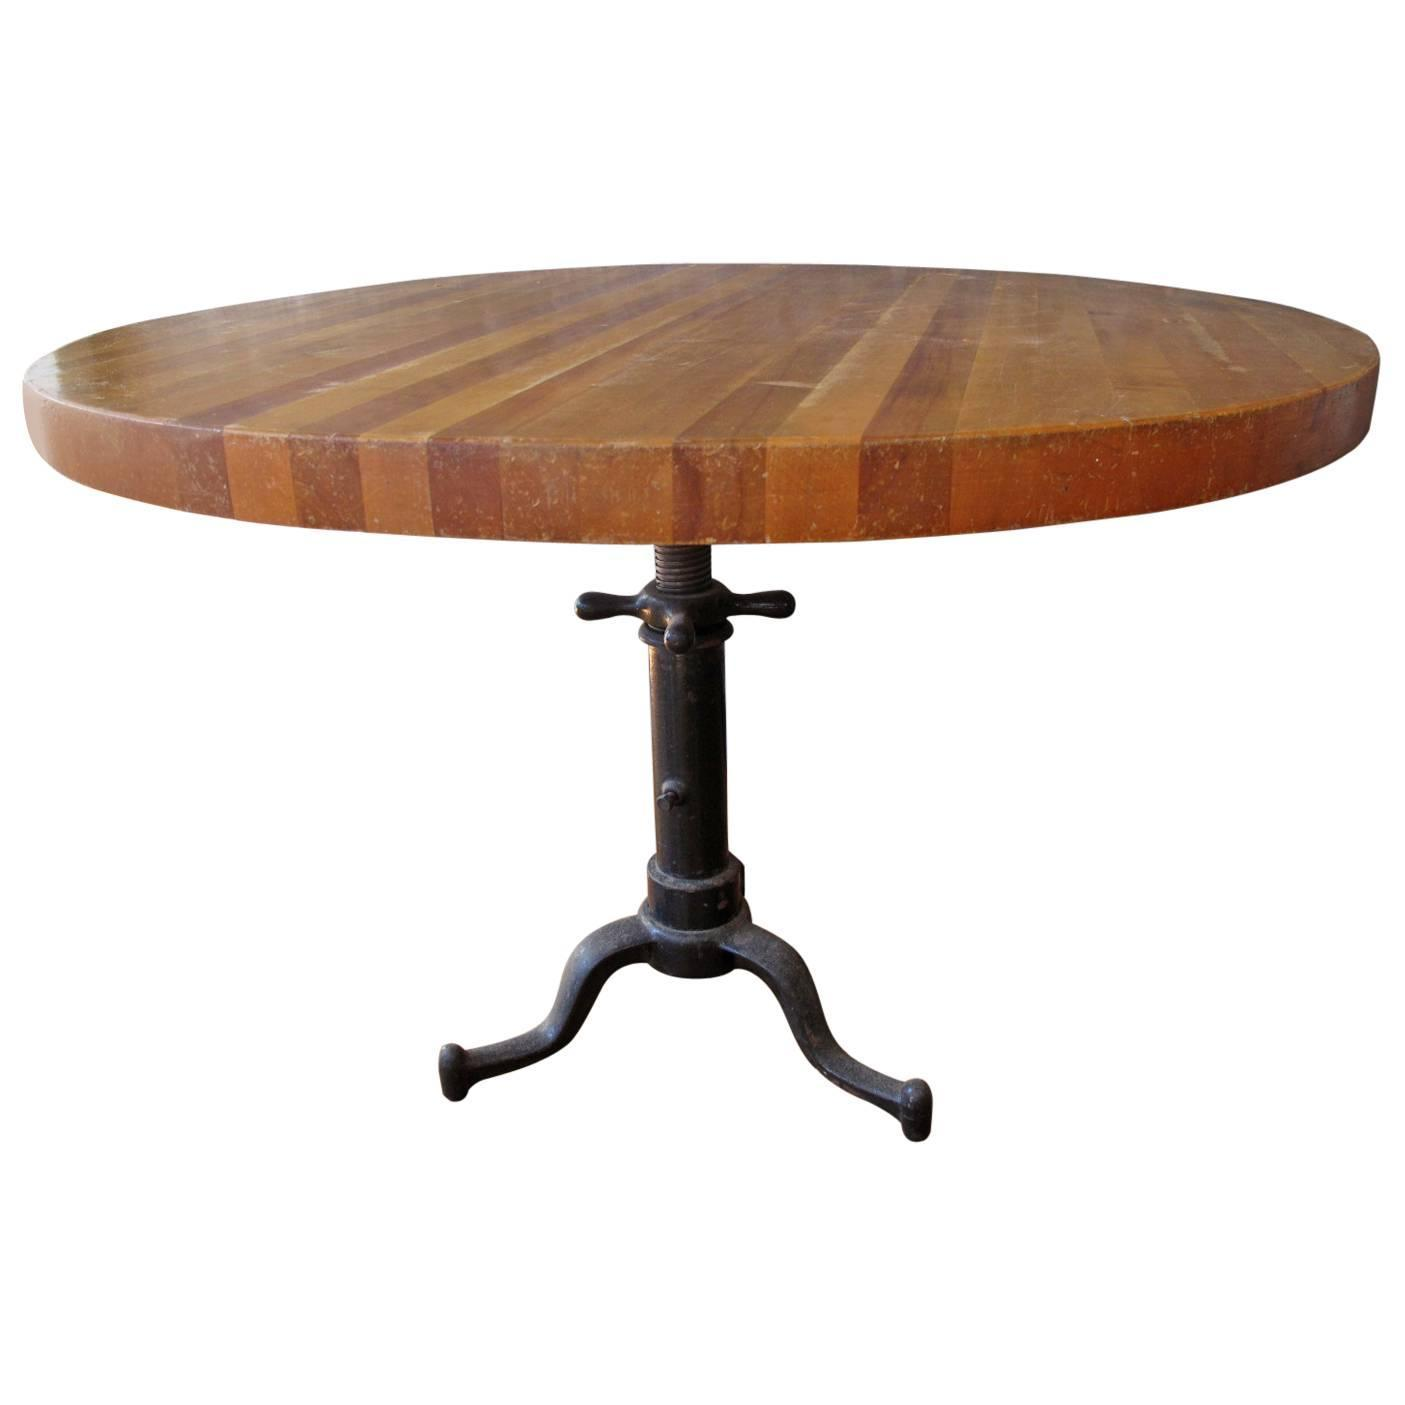 20th century industrial butcher block table at 1stdibs